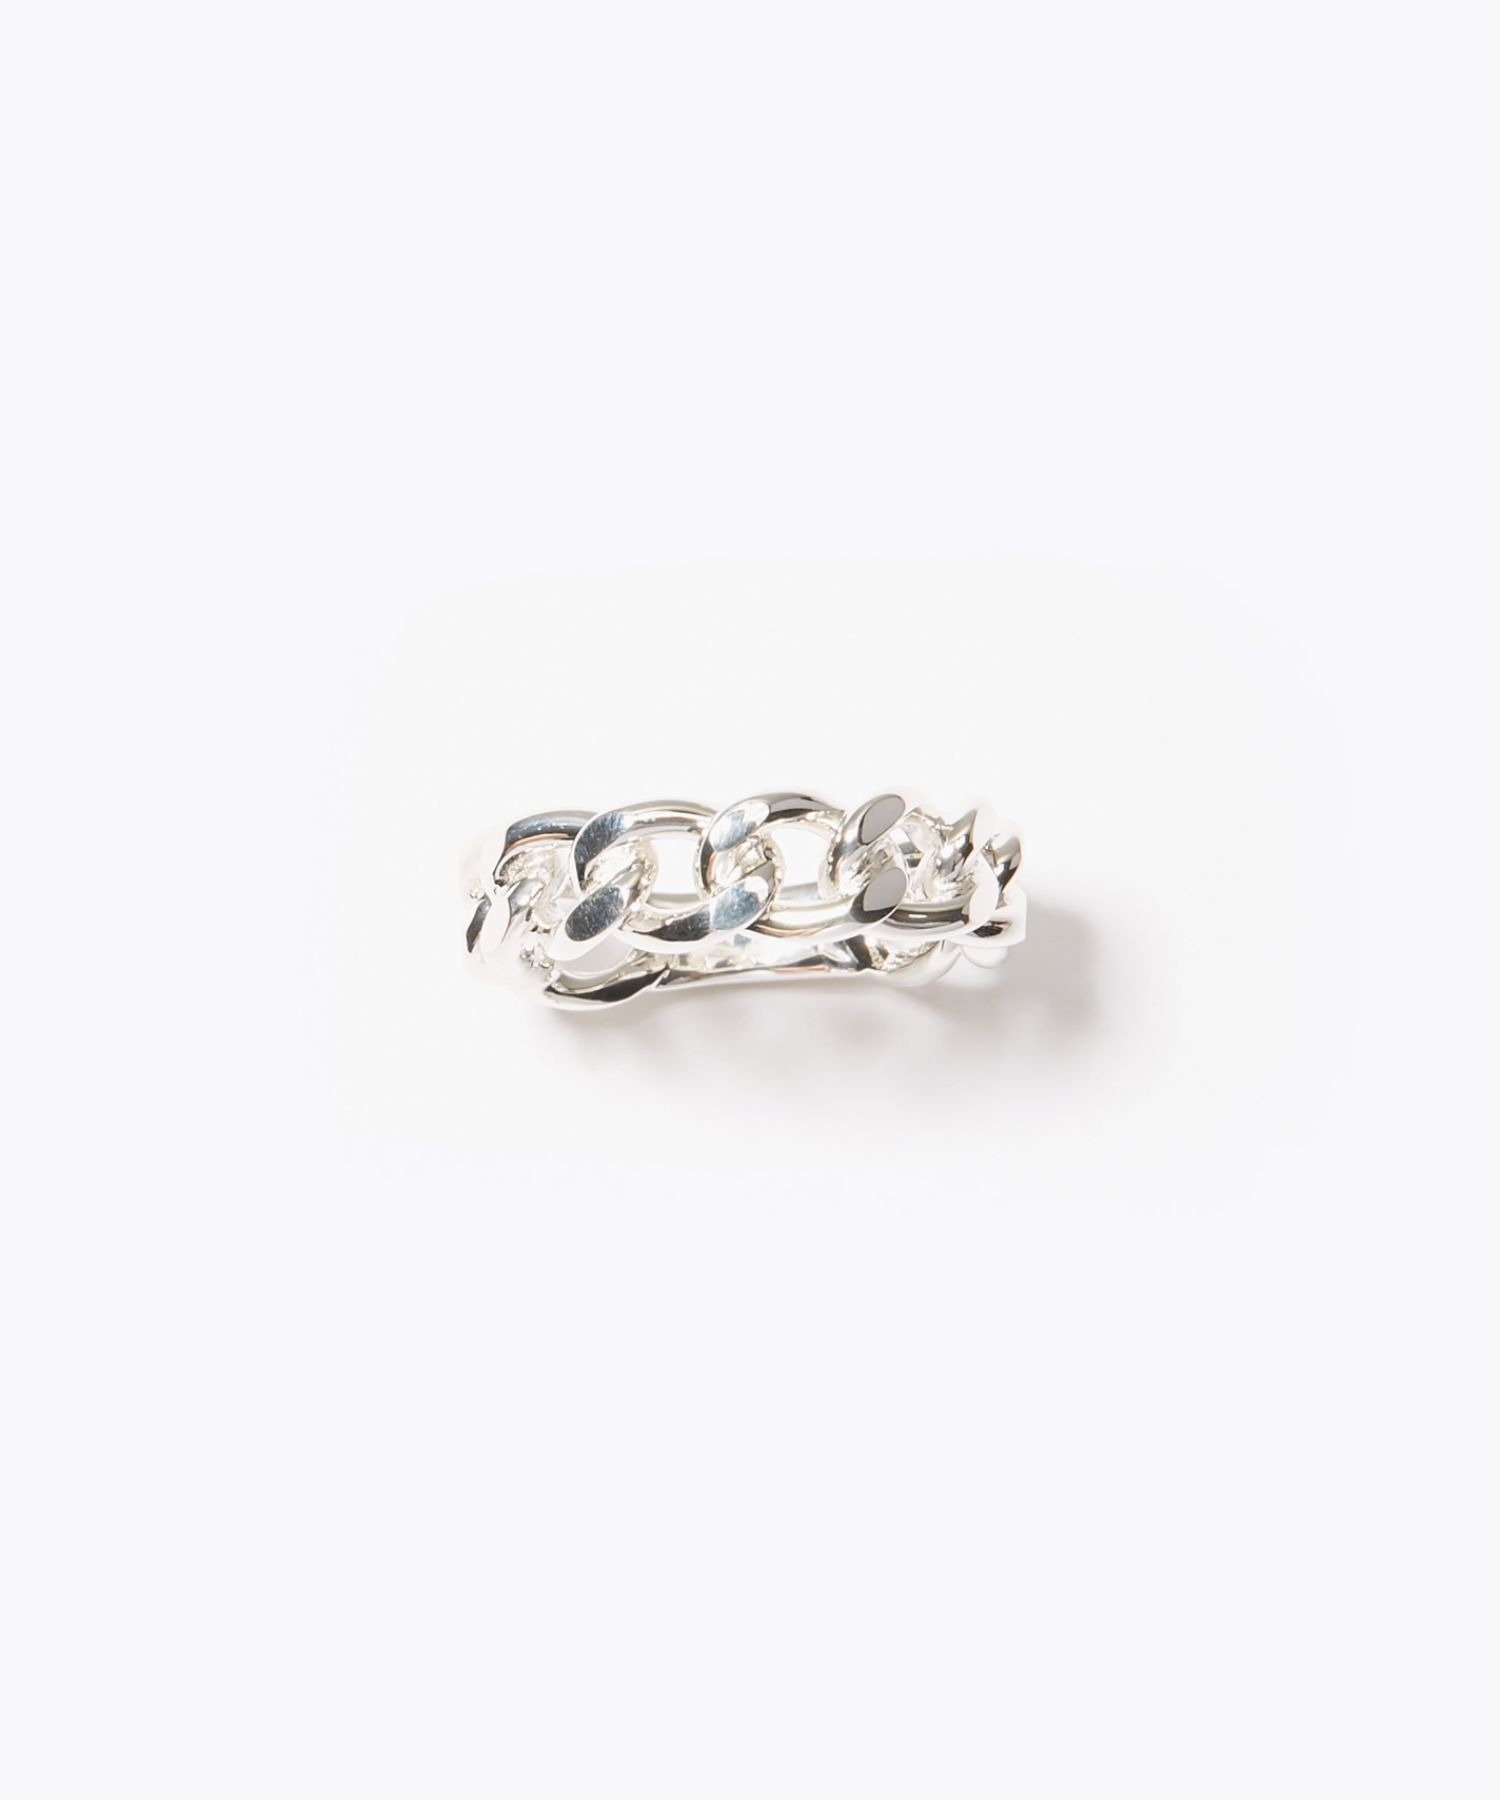 [cord] curve chain silver ring